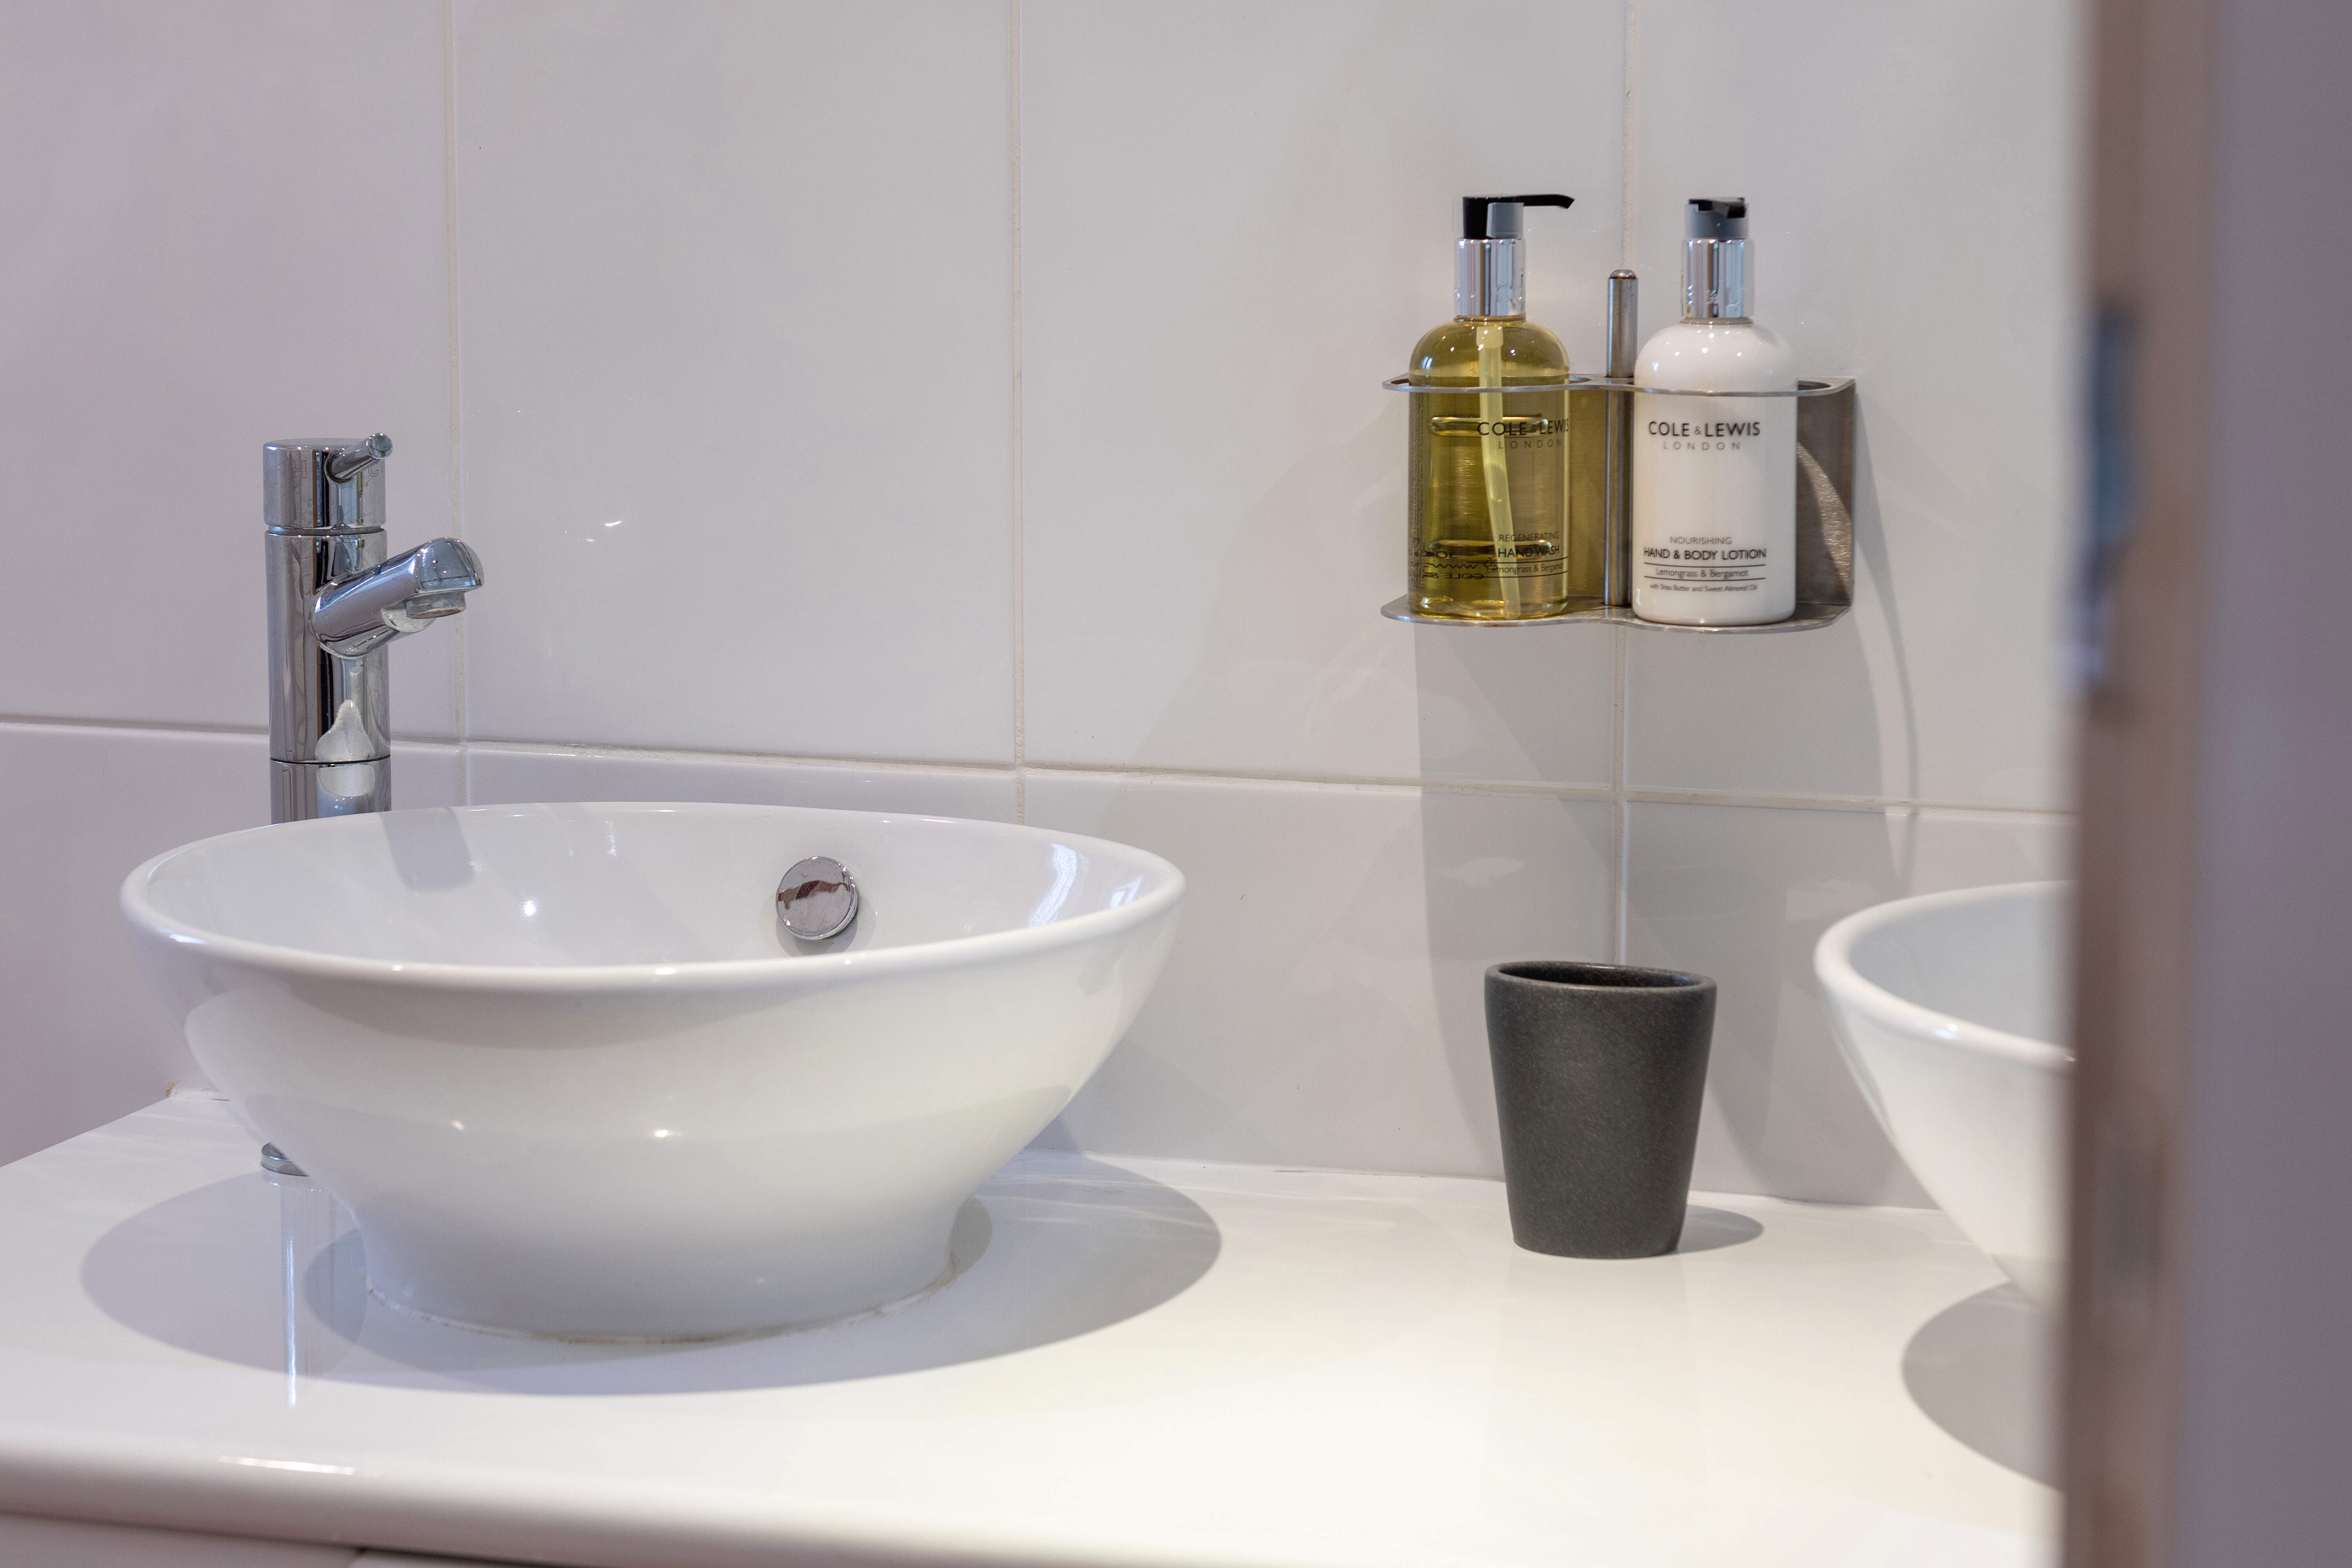 Cole & Lewis London toiletries complementary in each bathroom